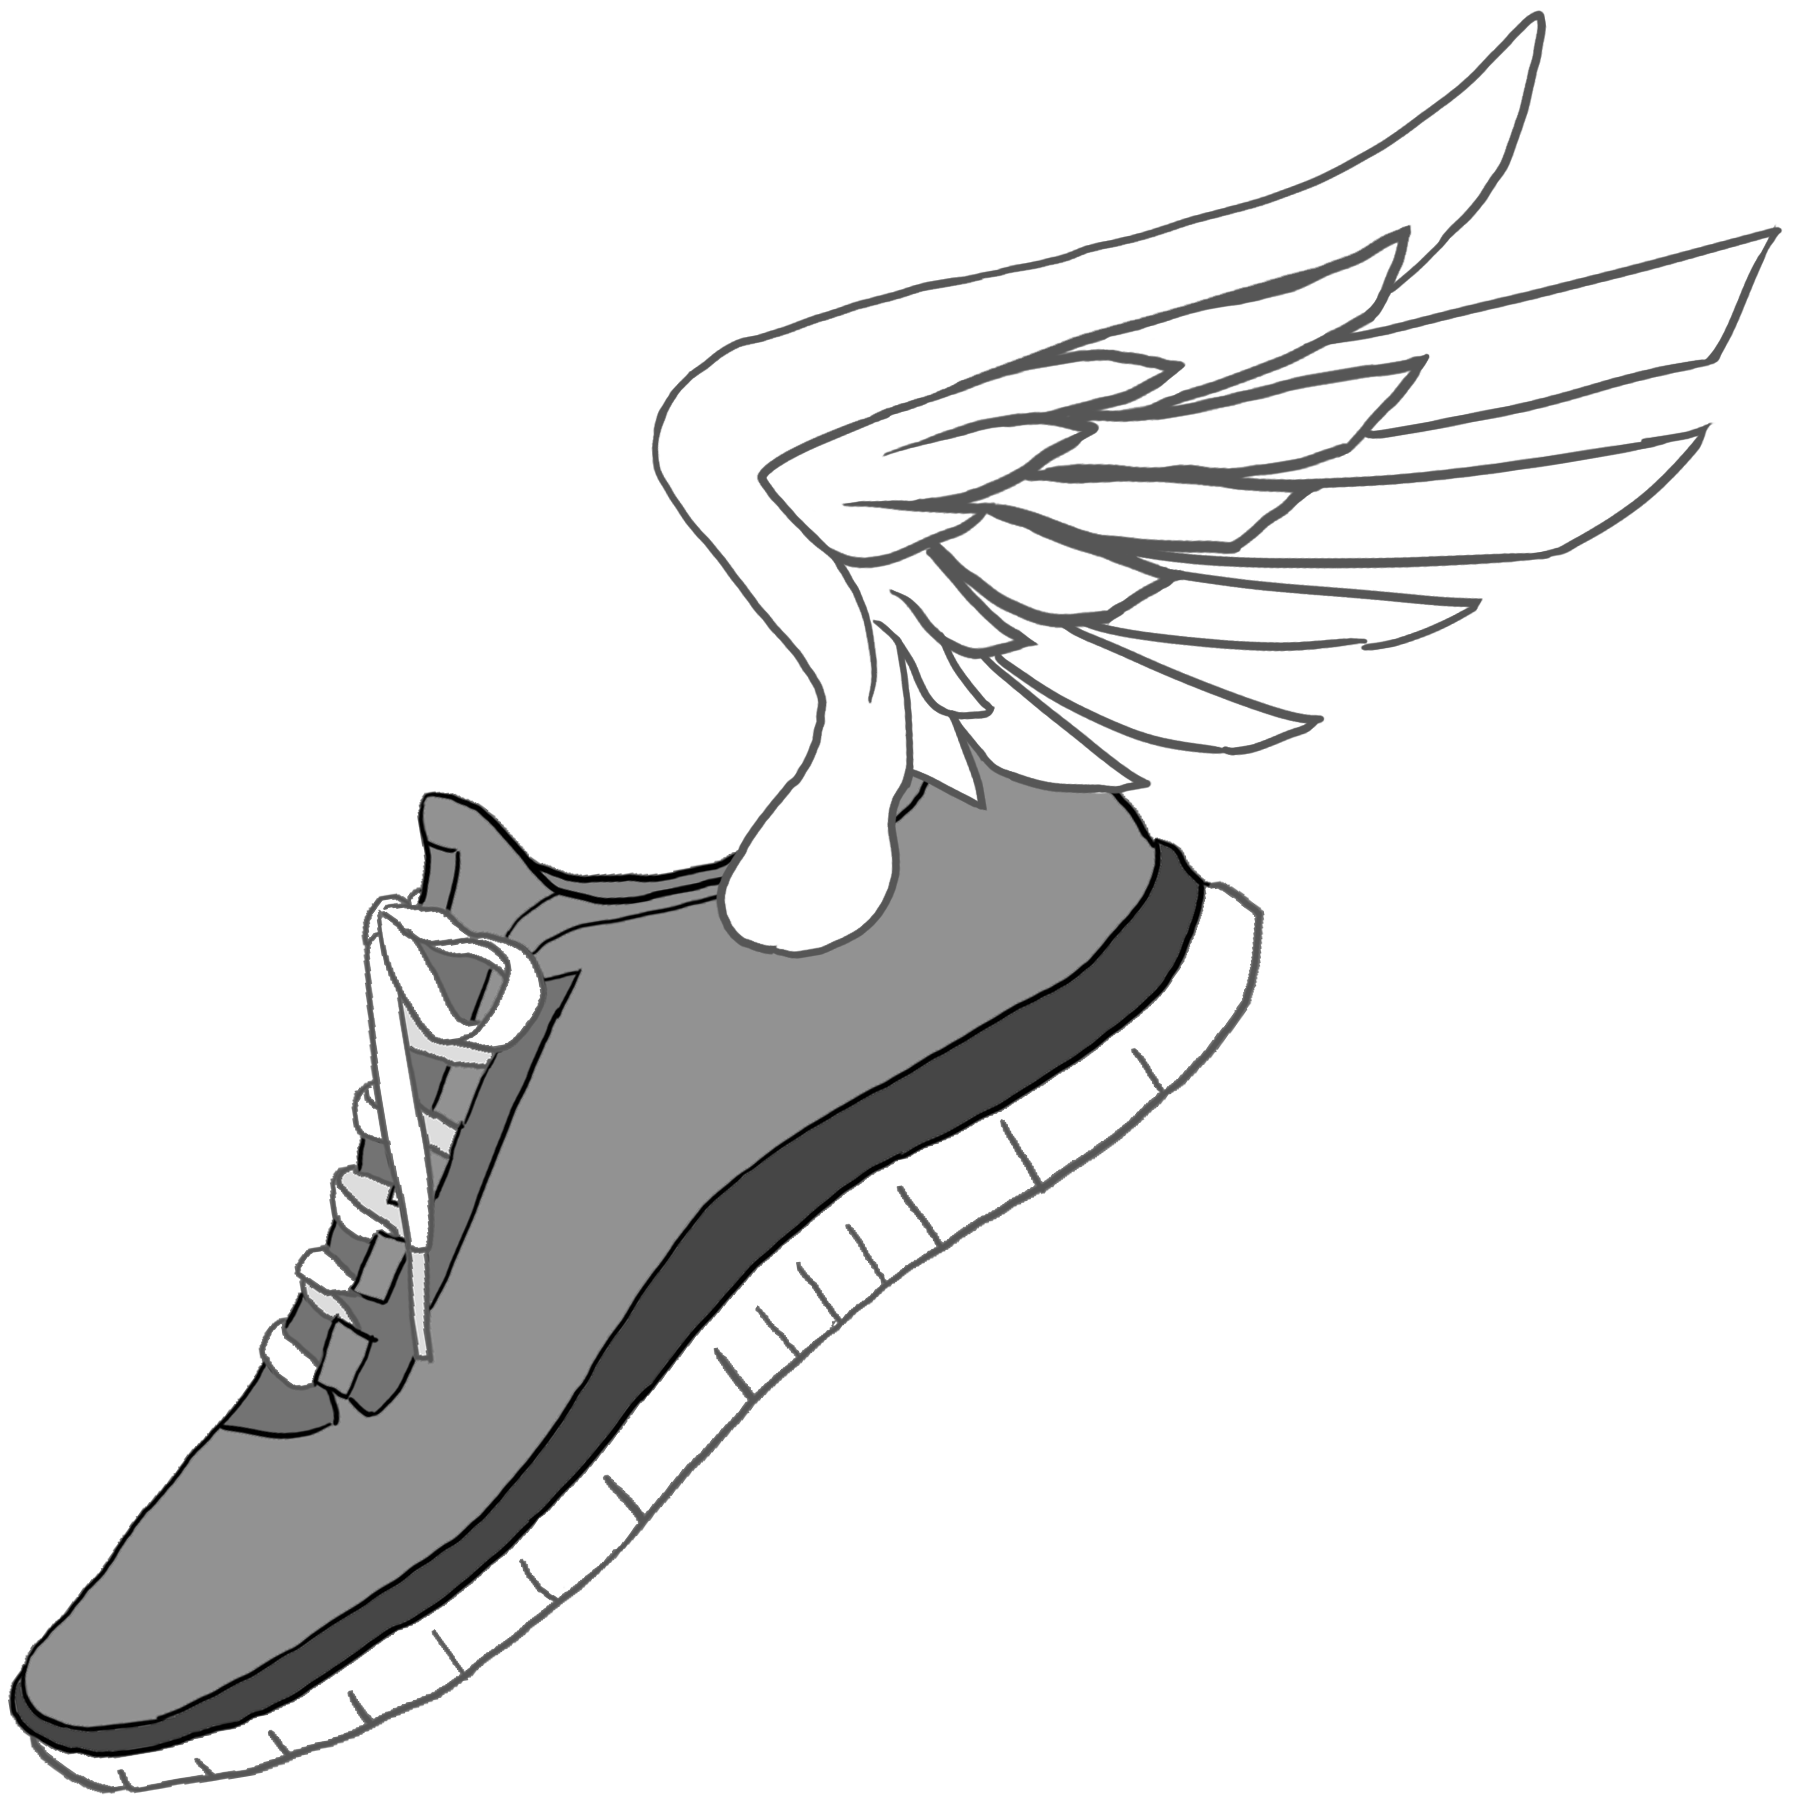 Track shoe with wings 6 clip art image